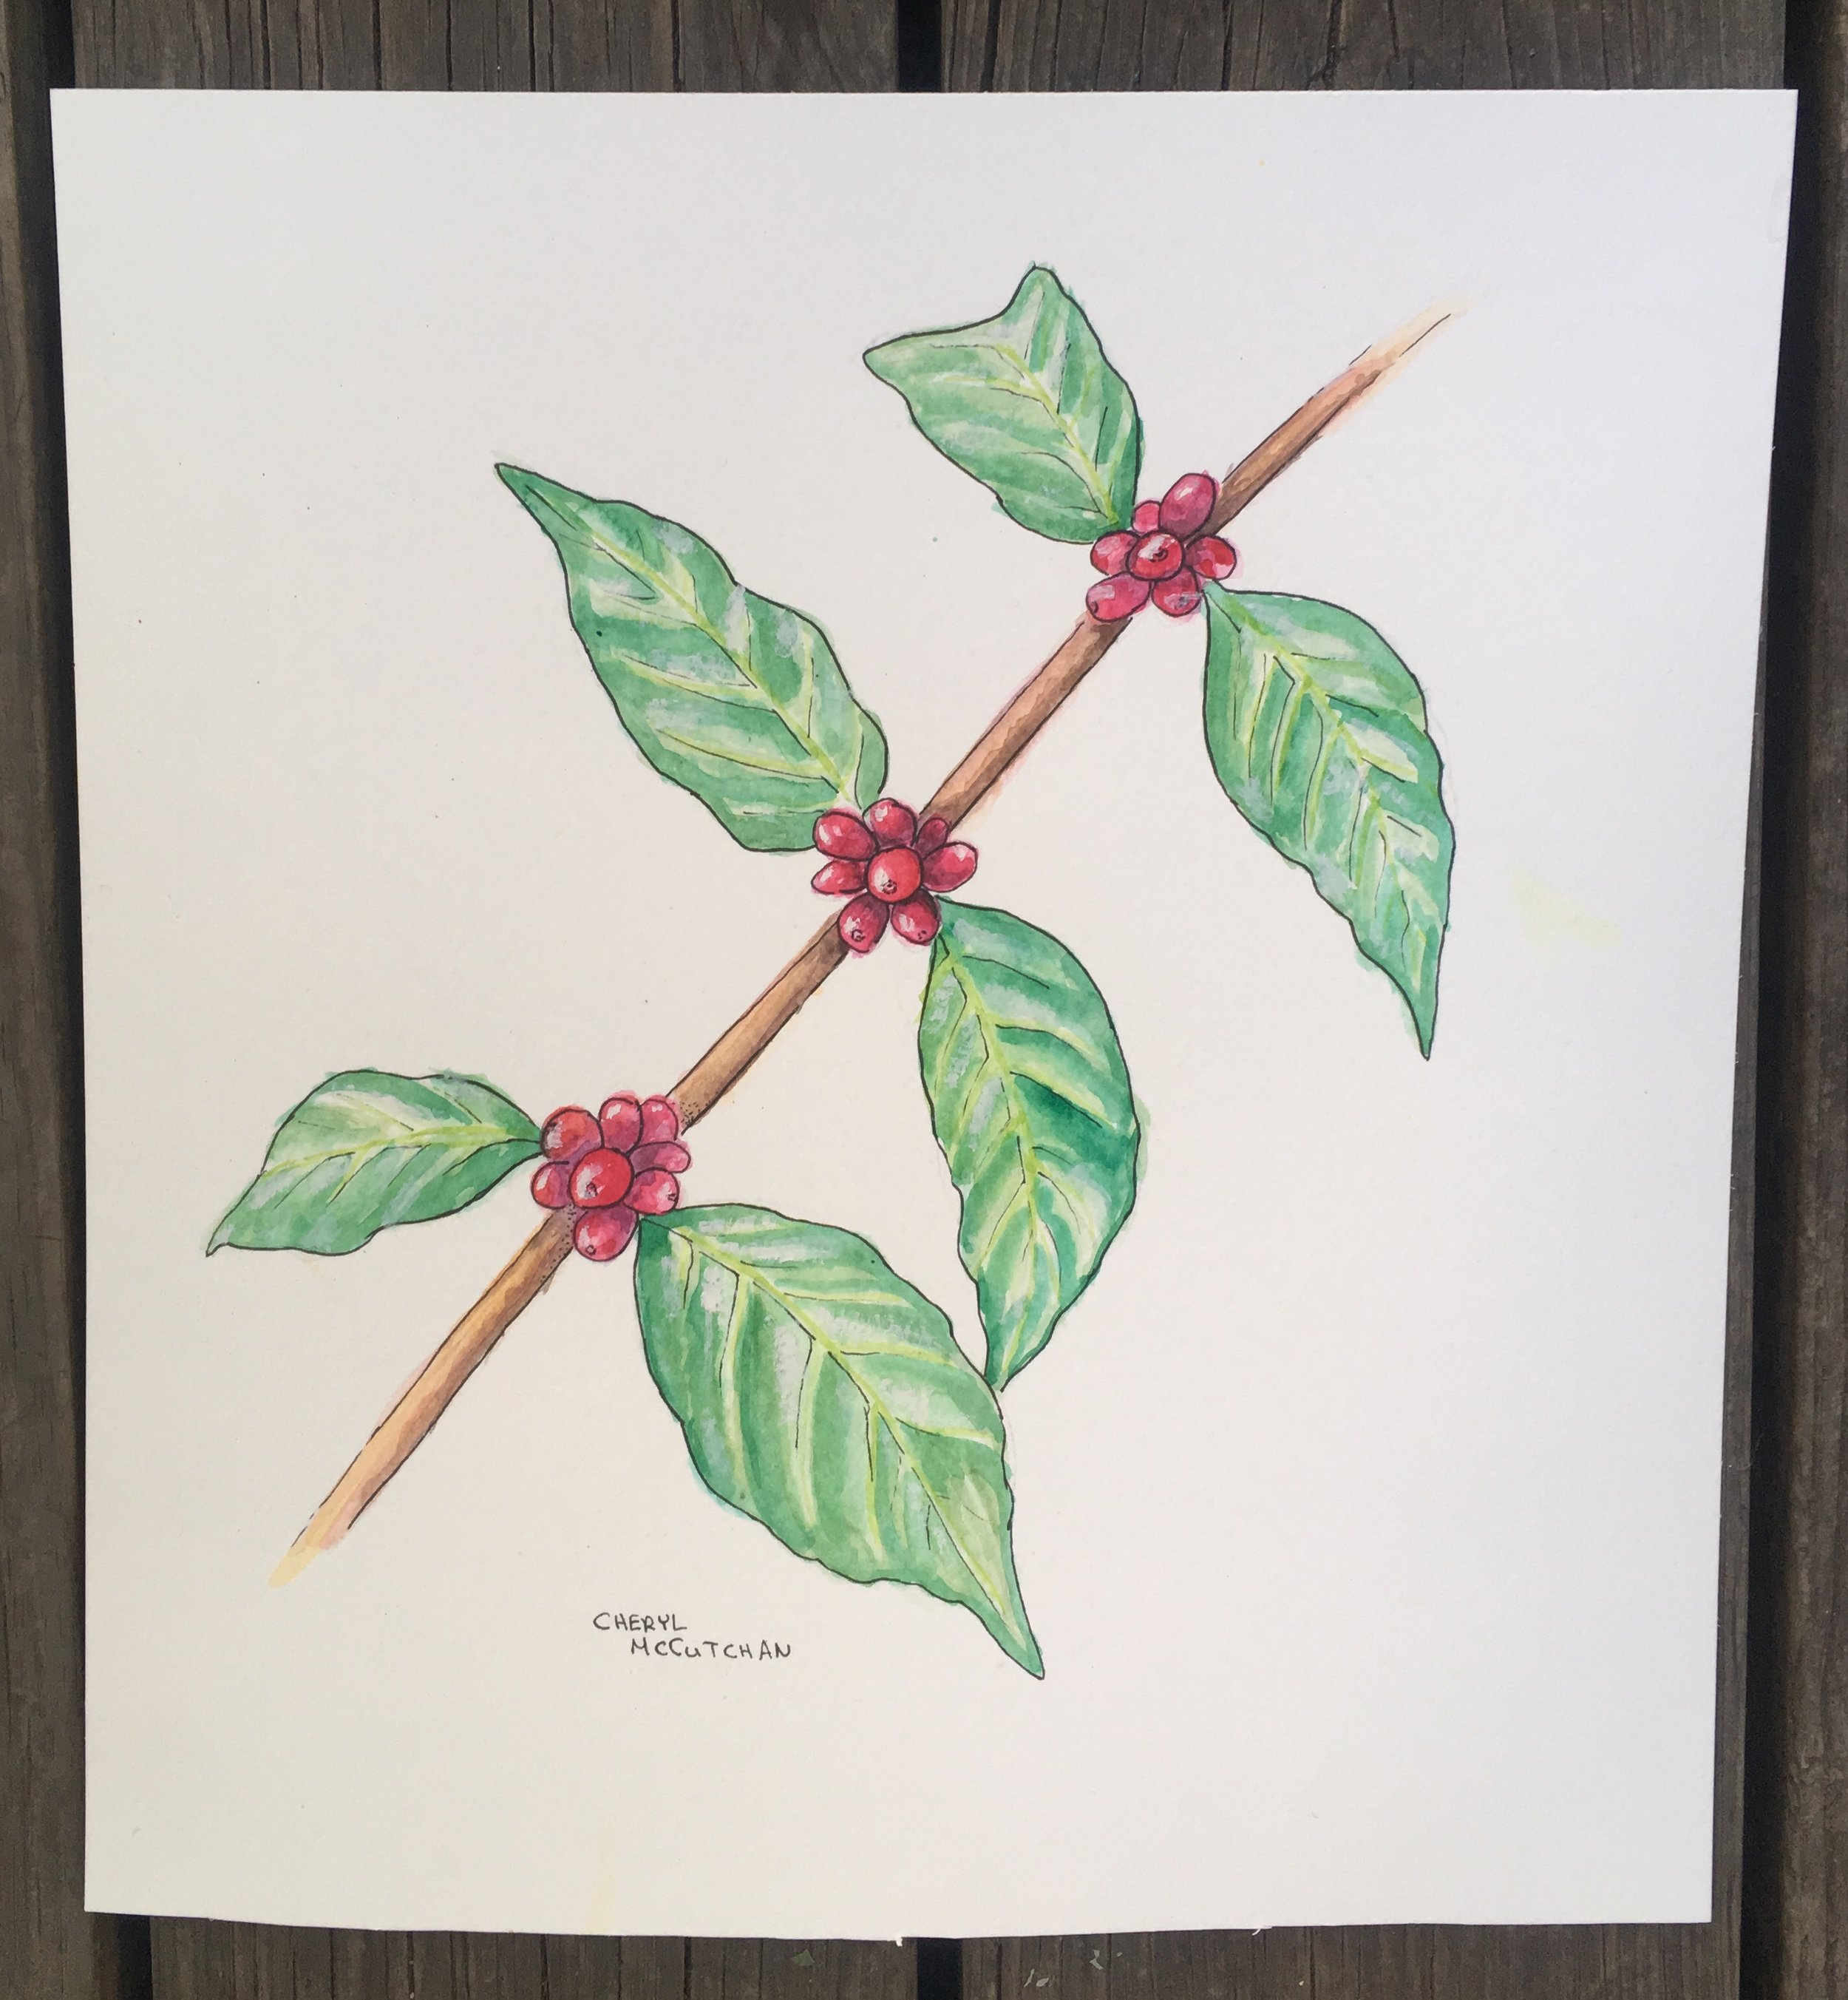 Coffee plant. Made with watercolor and ink.